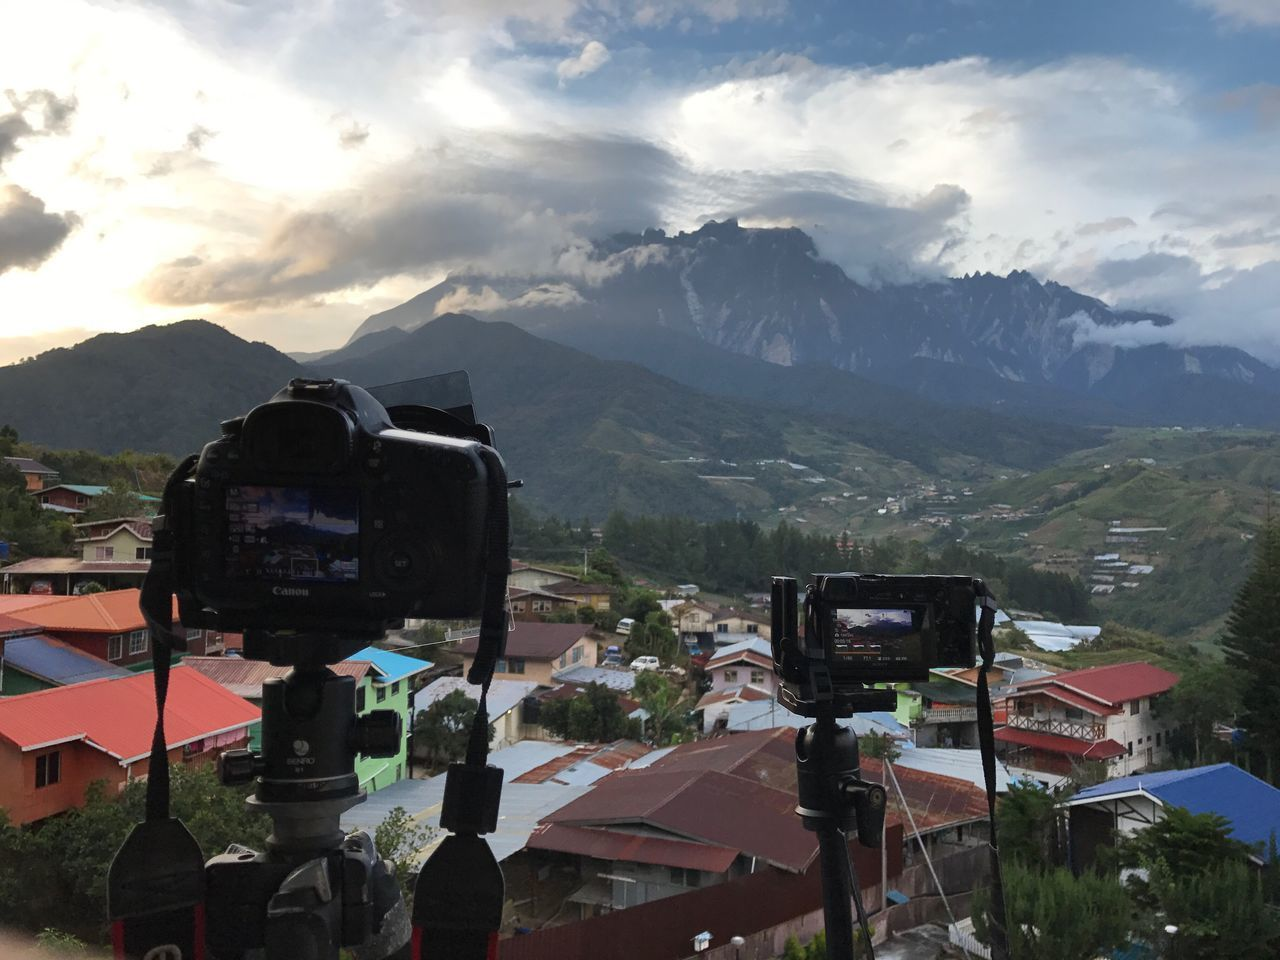 Capturing the sunset moment with the highest of South East Asia mount - Kinabalu Mount in the background Mountain Sky Mountain Range Nature Outdoors Day No People Beauty In Nature Landscape Sunset Kinabalu Mount Canon Photography Sony A6000 Sony Timelapse